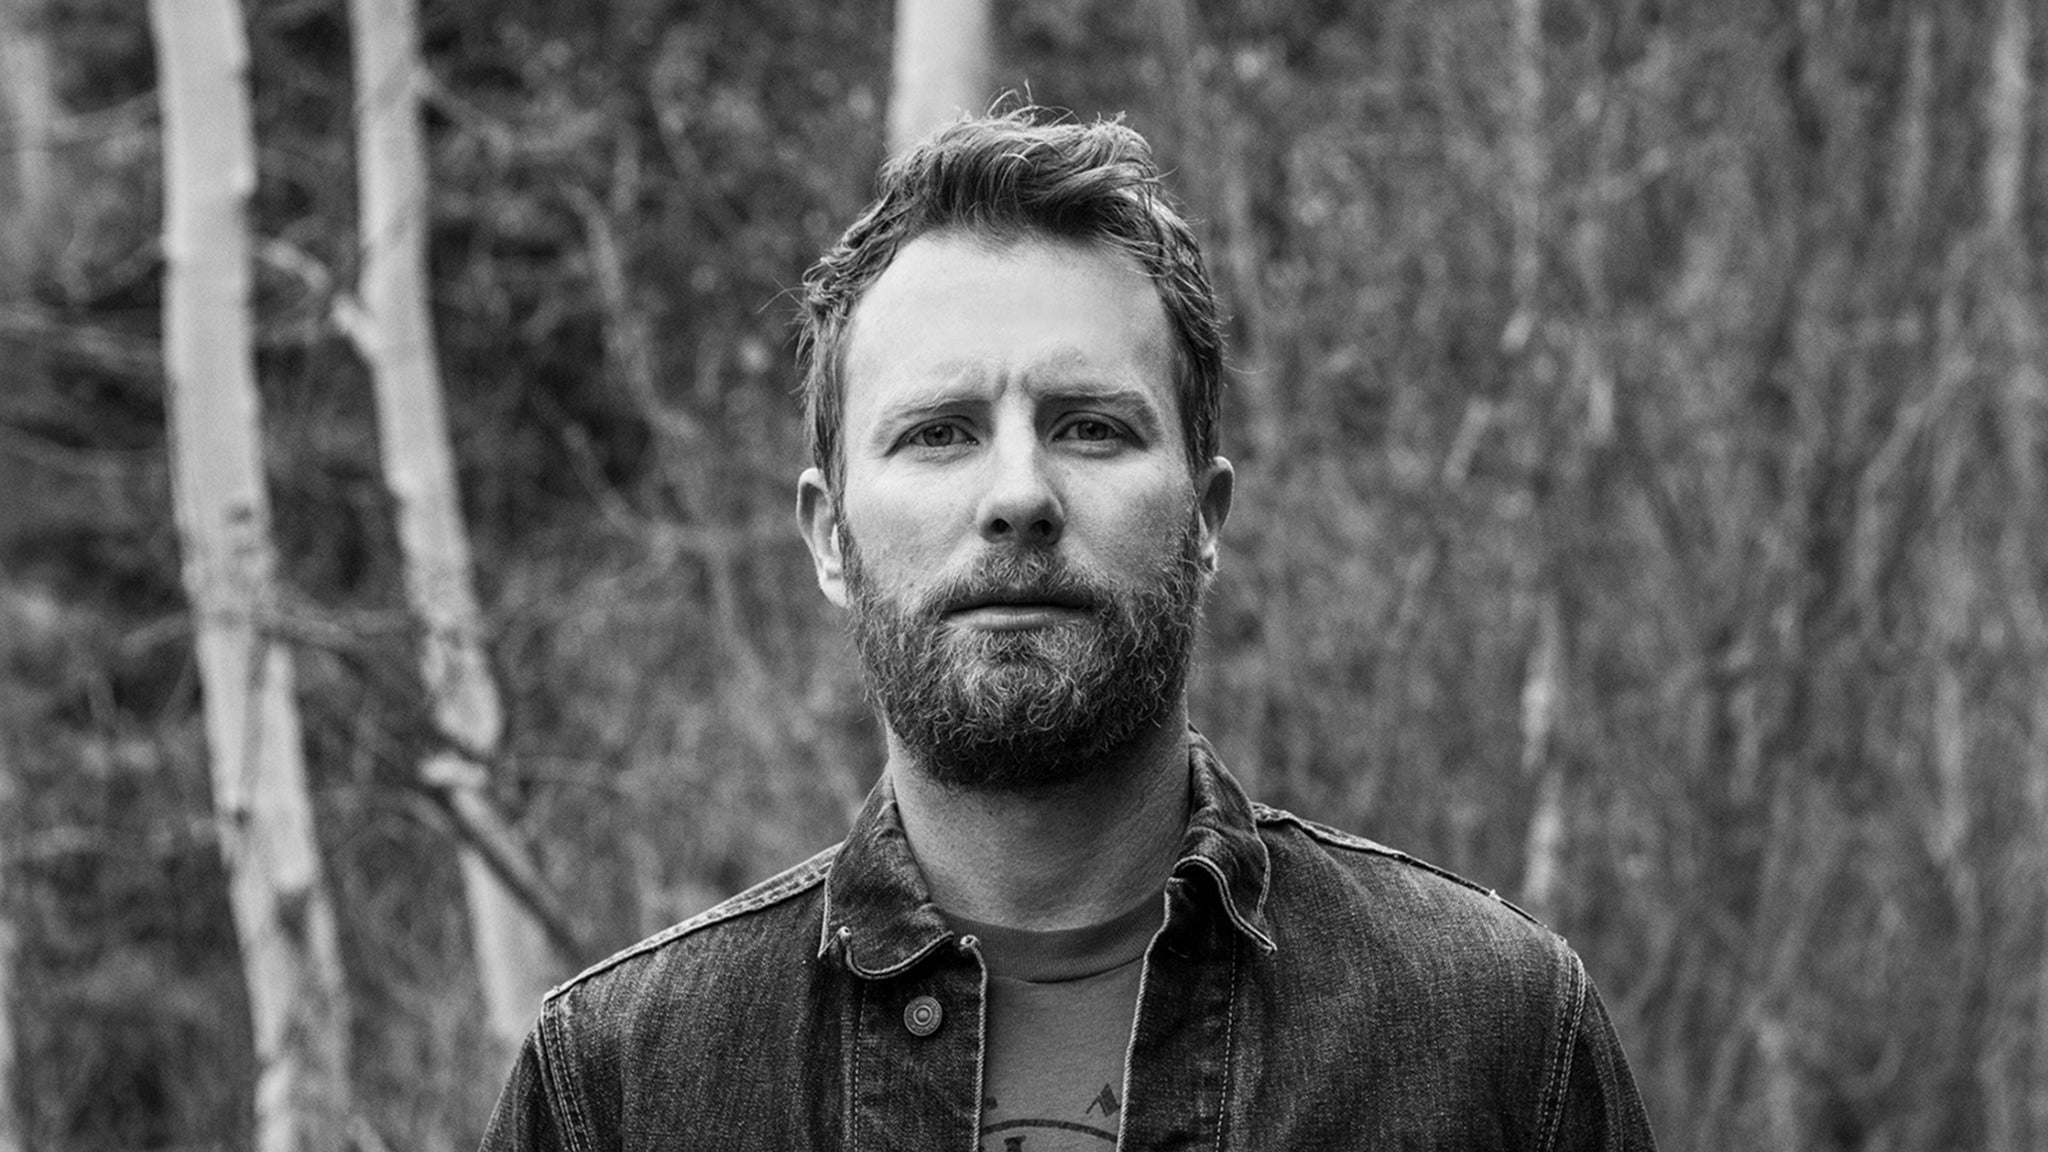 Dierks Bentley: Burning Man 2019 at KeyBank Pavilion